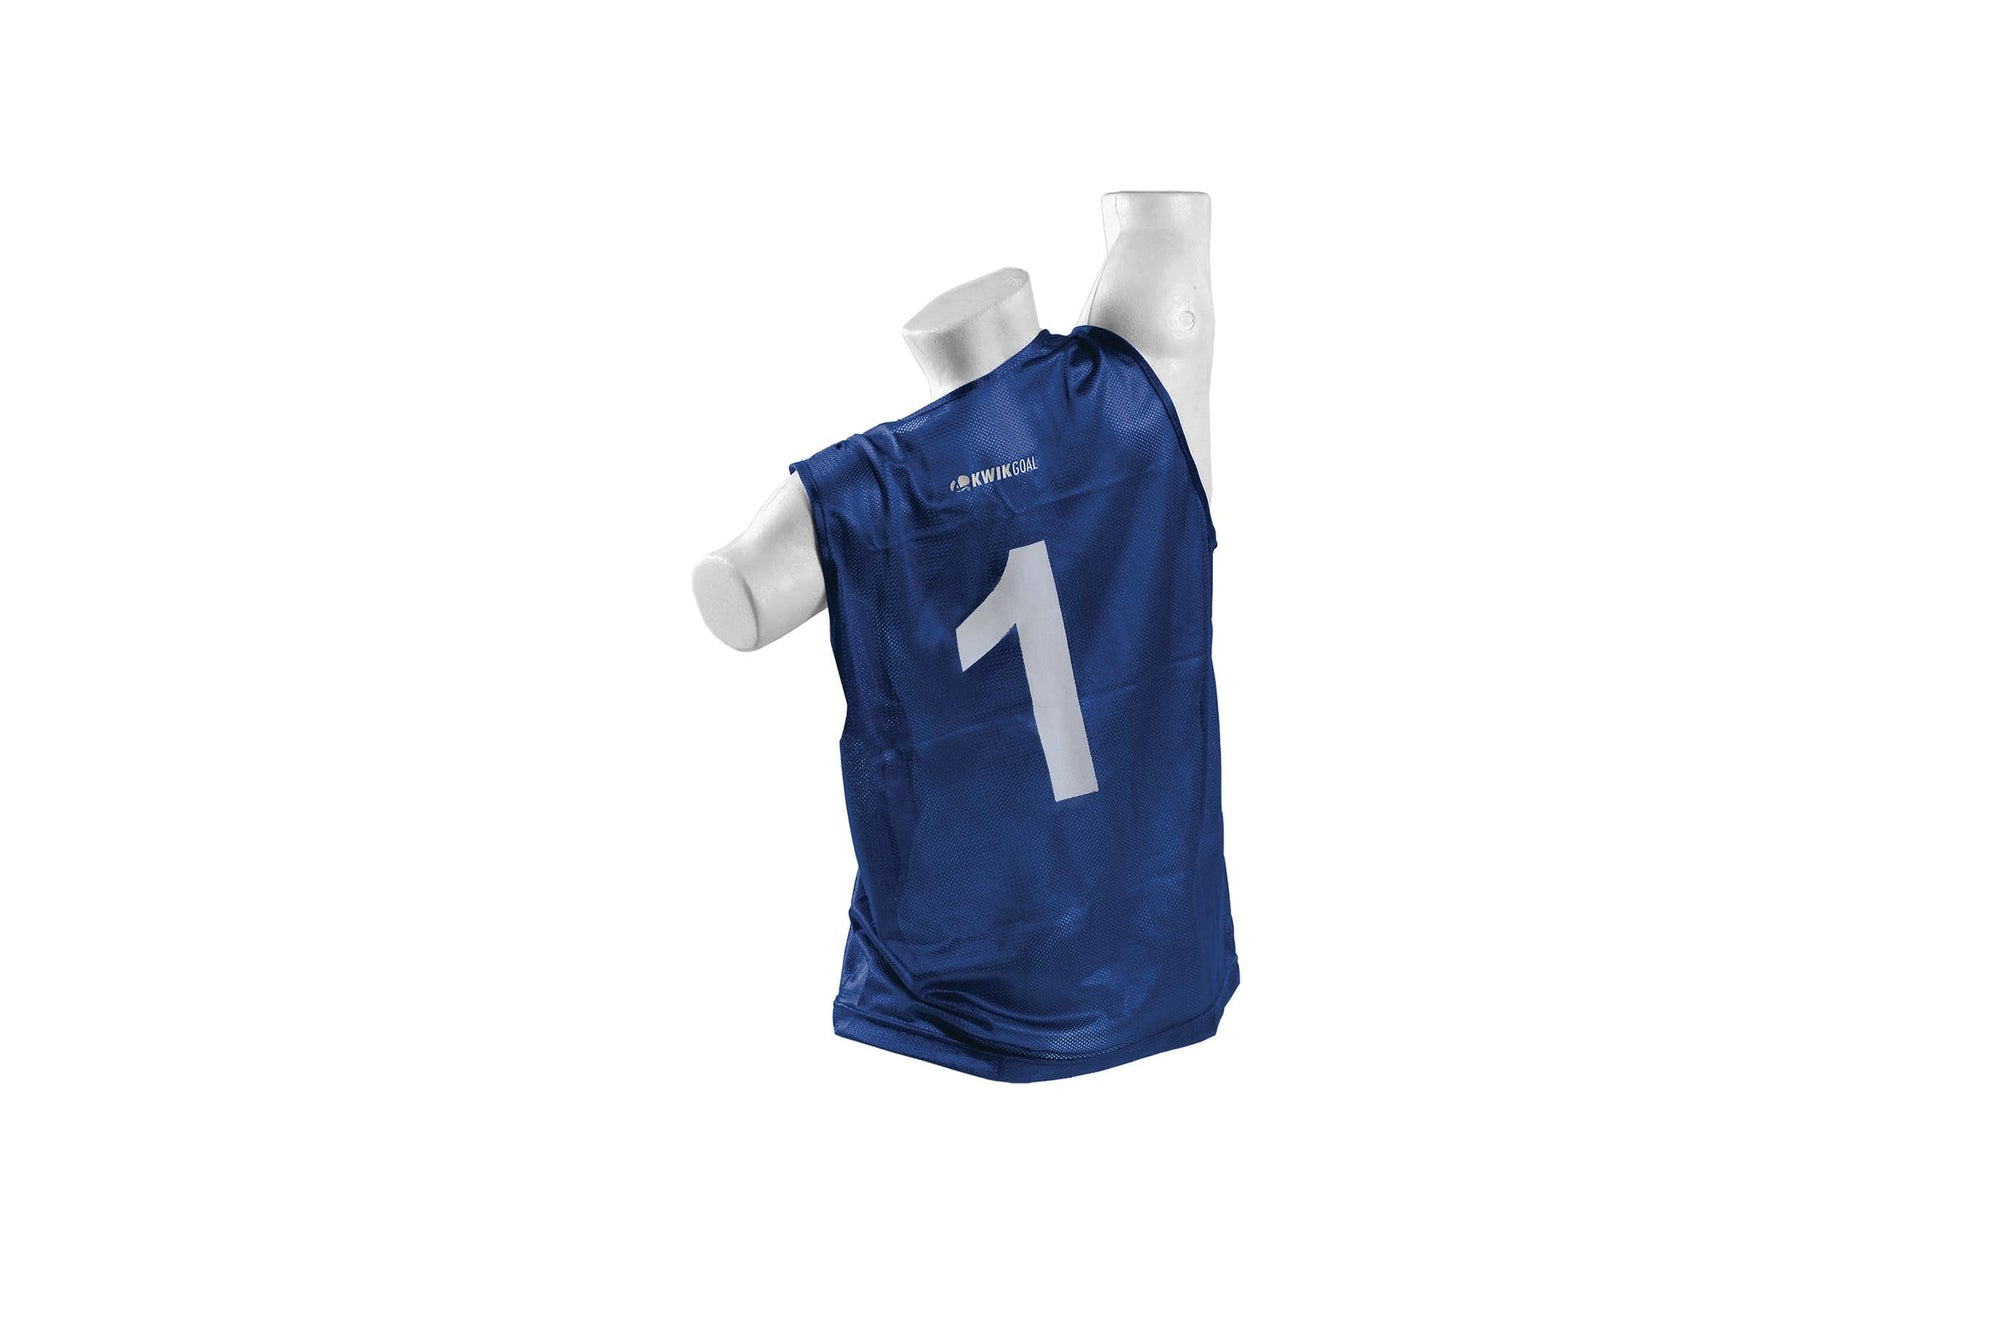 Blue Youth Rugby Vest Number 1 on Mannequin